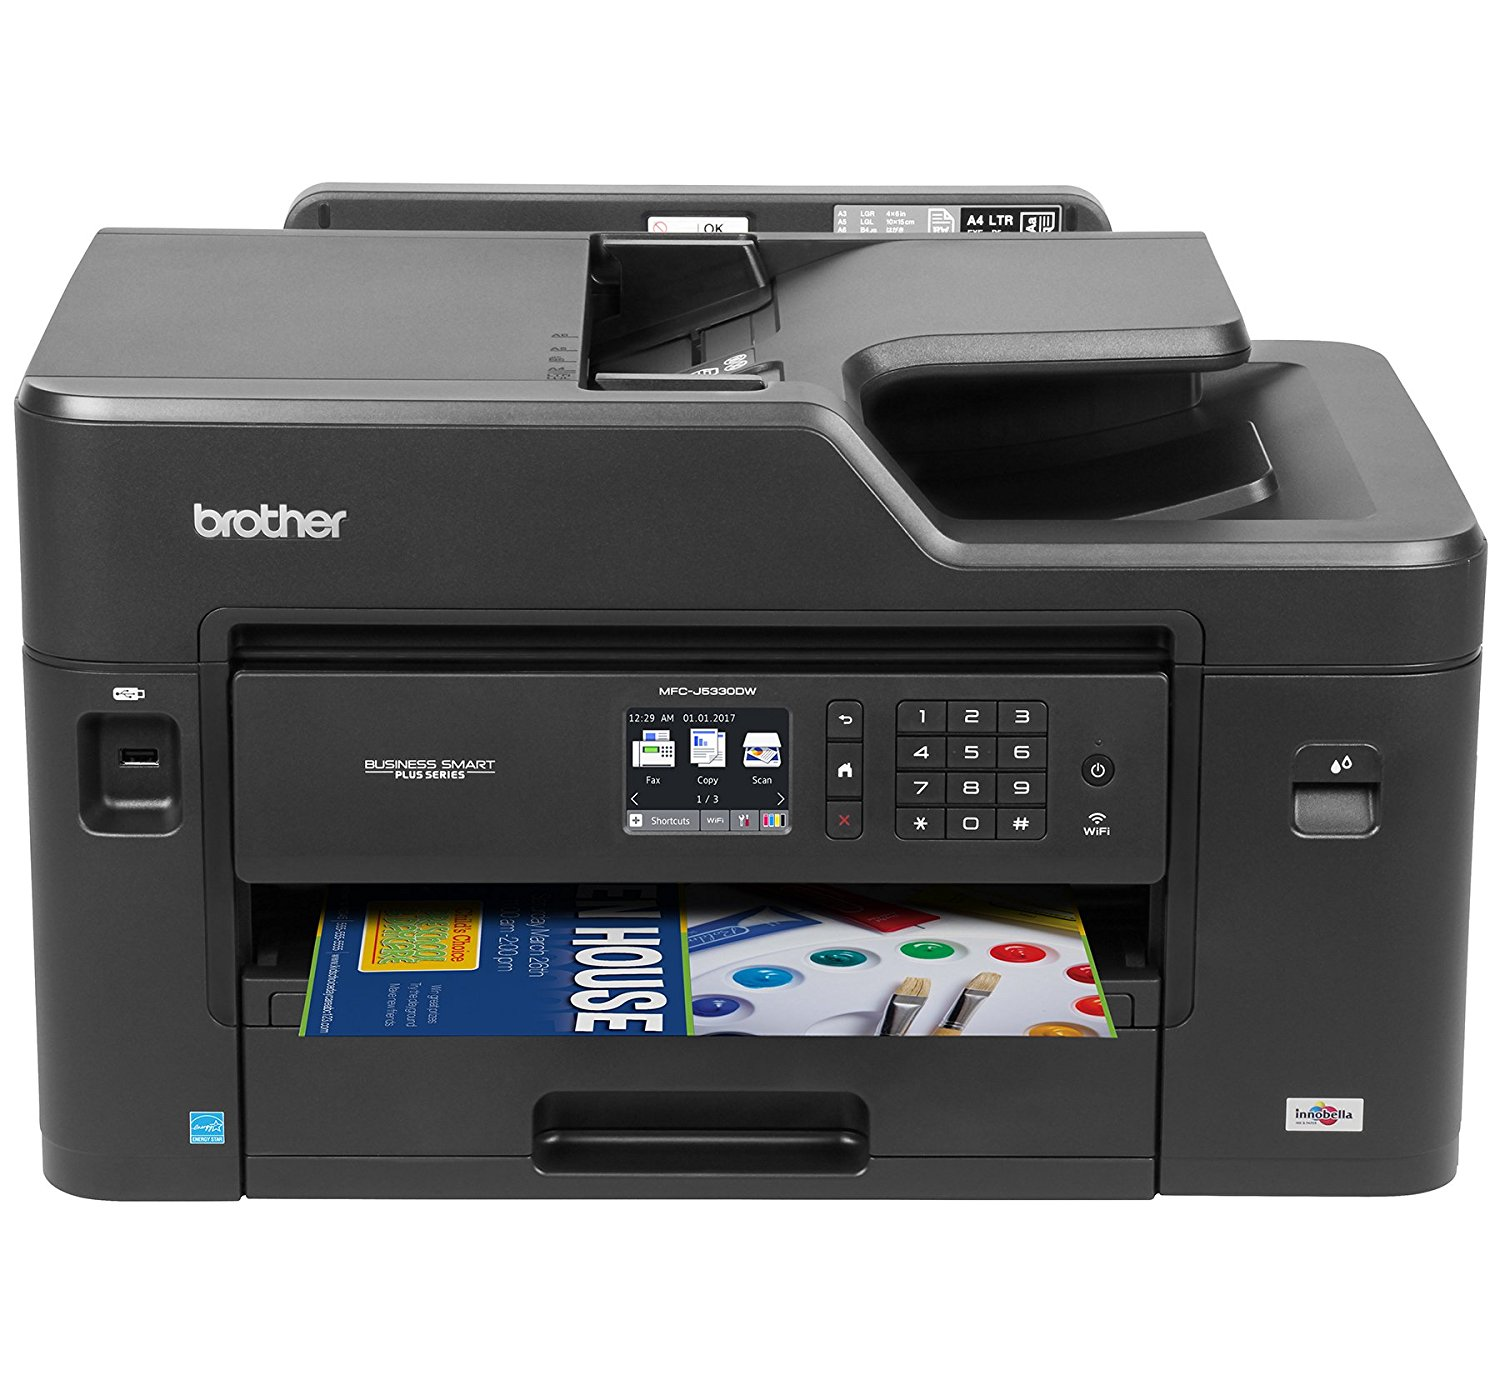 Brother Business Smart Plus MFC-J5330DW Color Inkjet All-in-One, Copy/Fax/Print/Scan